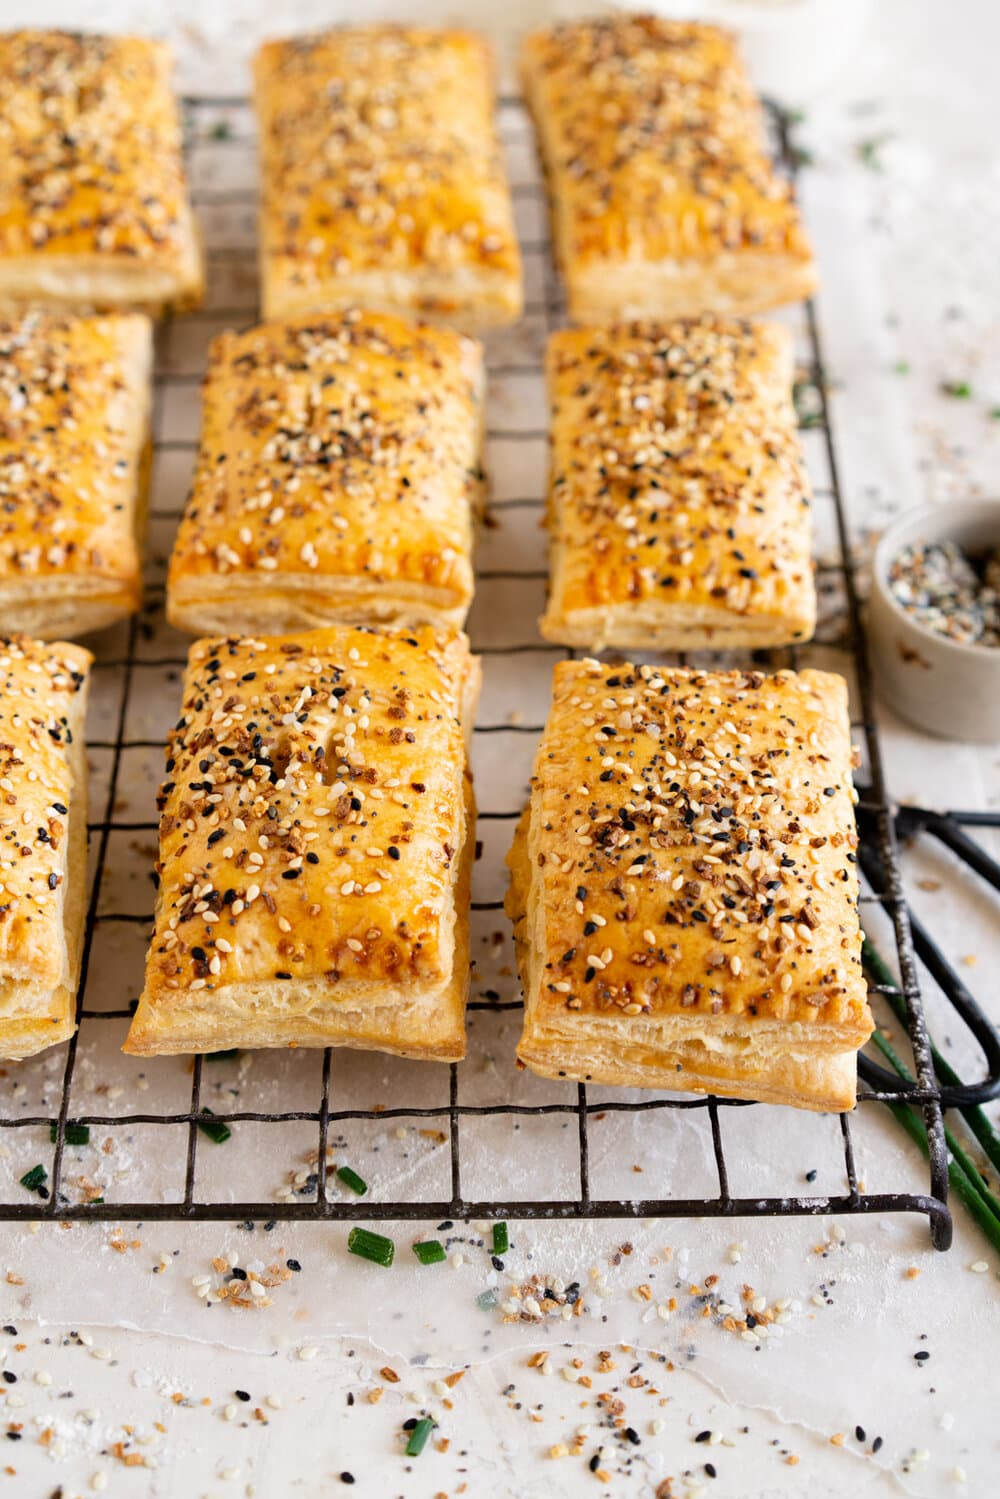 Smoked Salmon and Cream Cheese Hand Pies with Everything Bagel Seasoning. Easy flaky pie dough is filled with a smoked salmon and cream cheese mixture, and baked until perfectly golden and flaky.